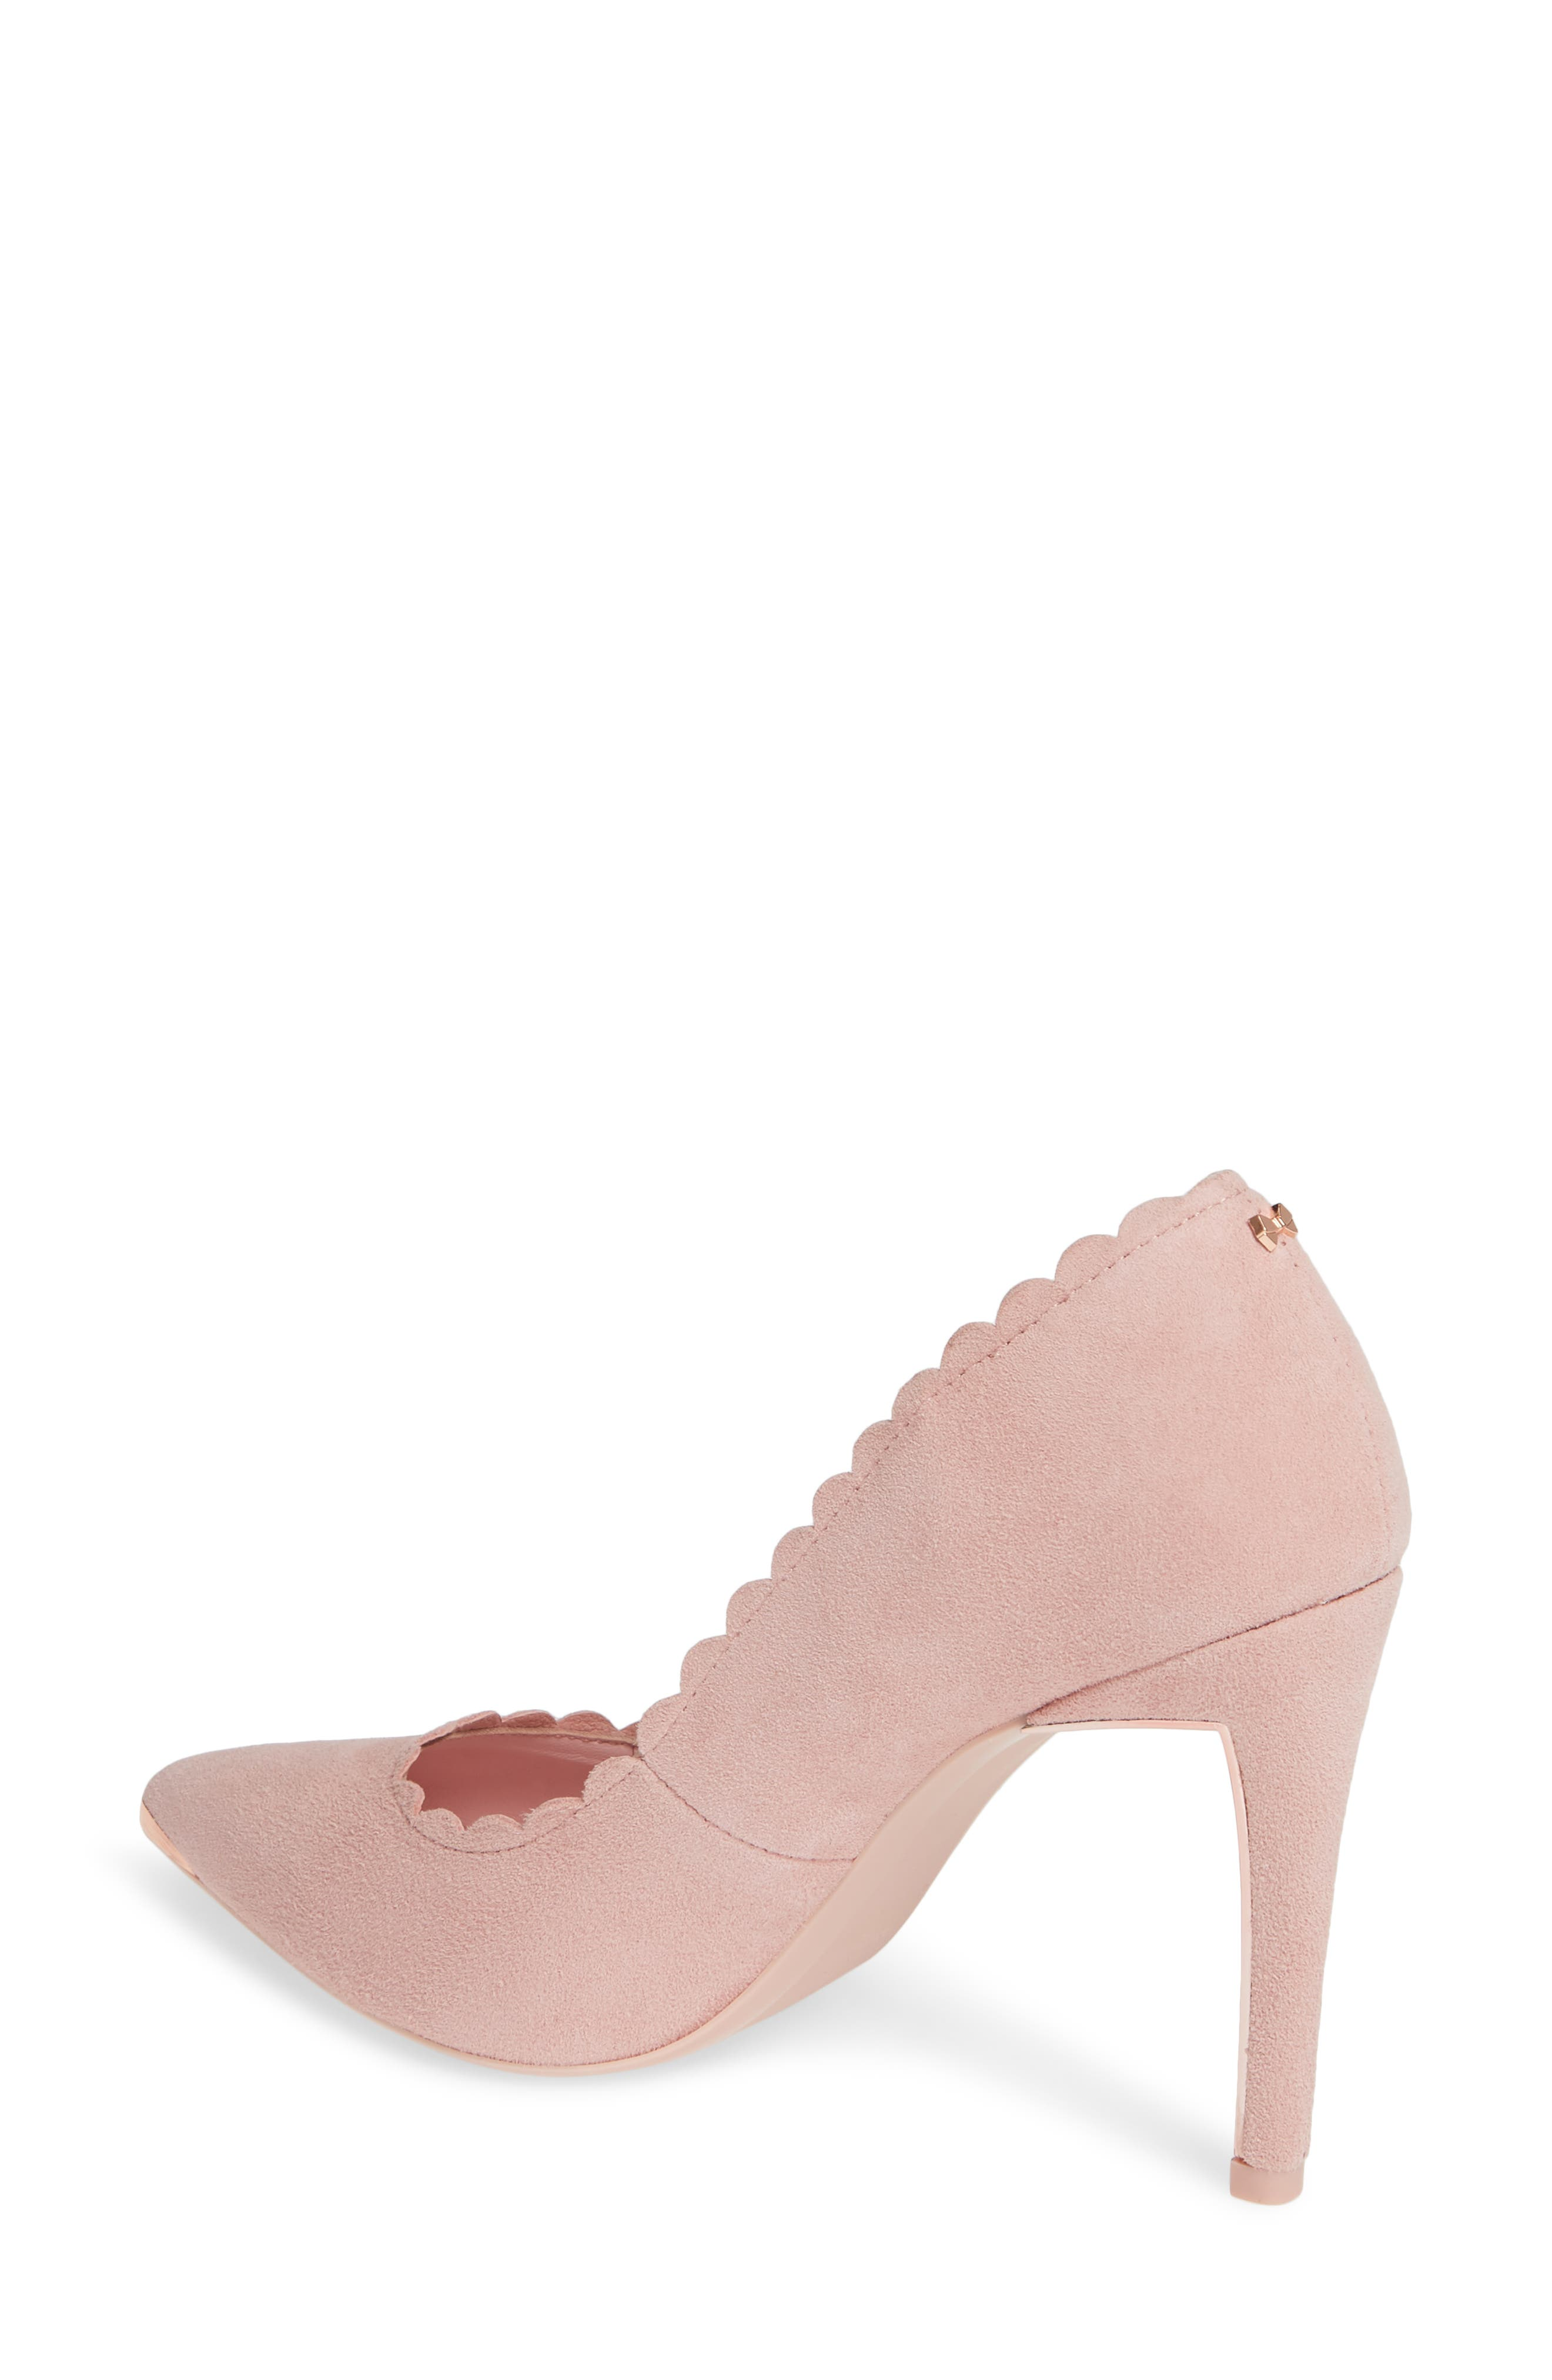 TED BAKER LONDON, Sloana Pointy Toe Pump, Alternate thumbnail 2, color, PINK BLOSSOM SUEDE